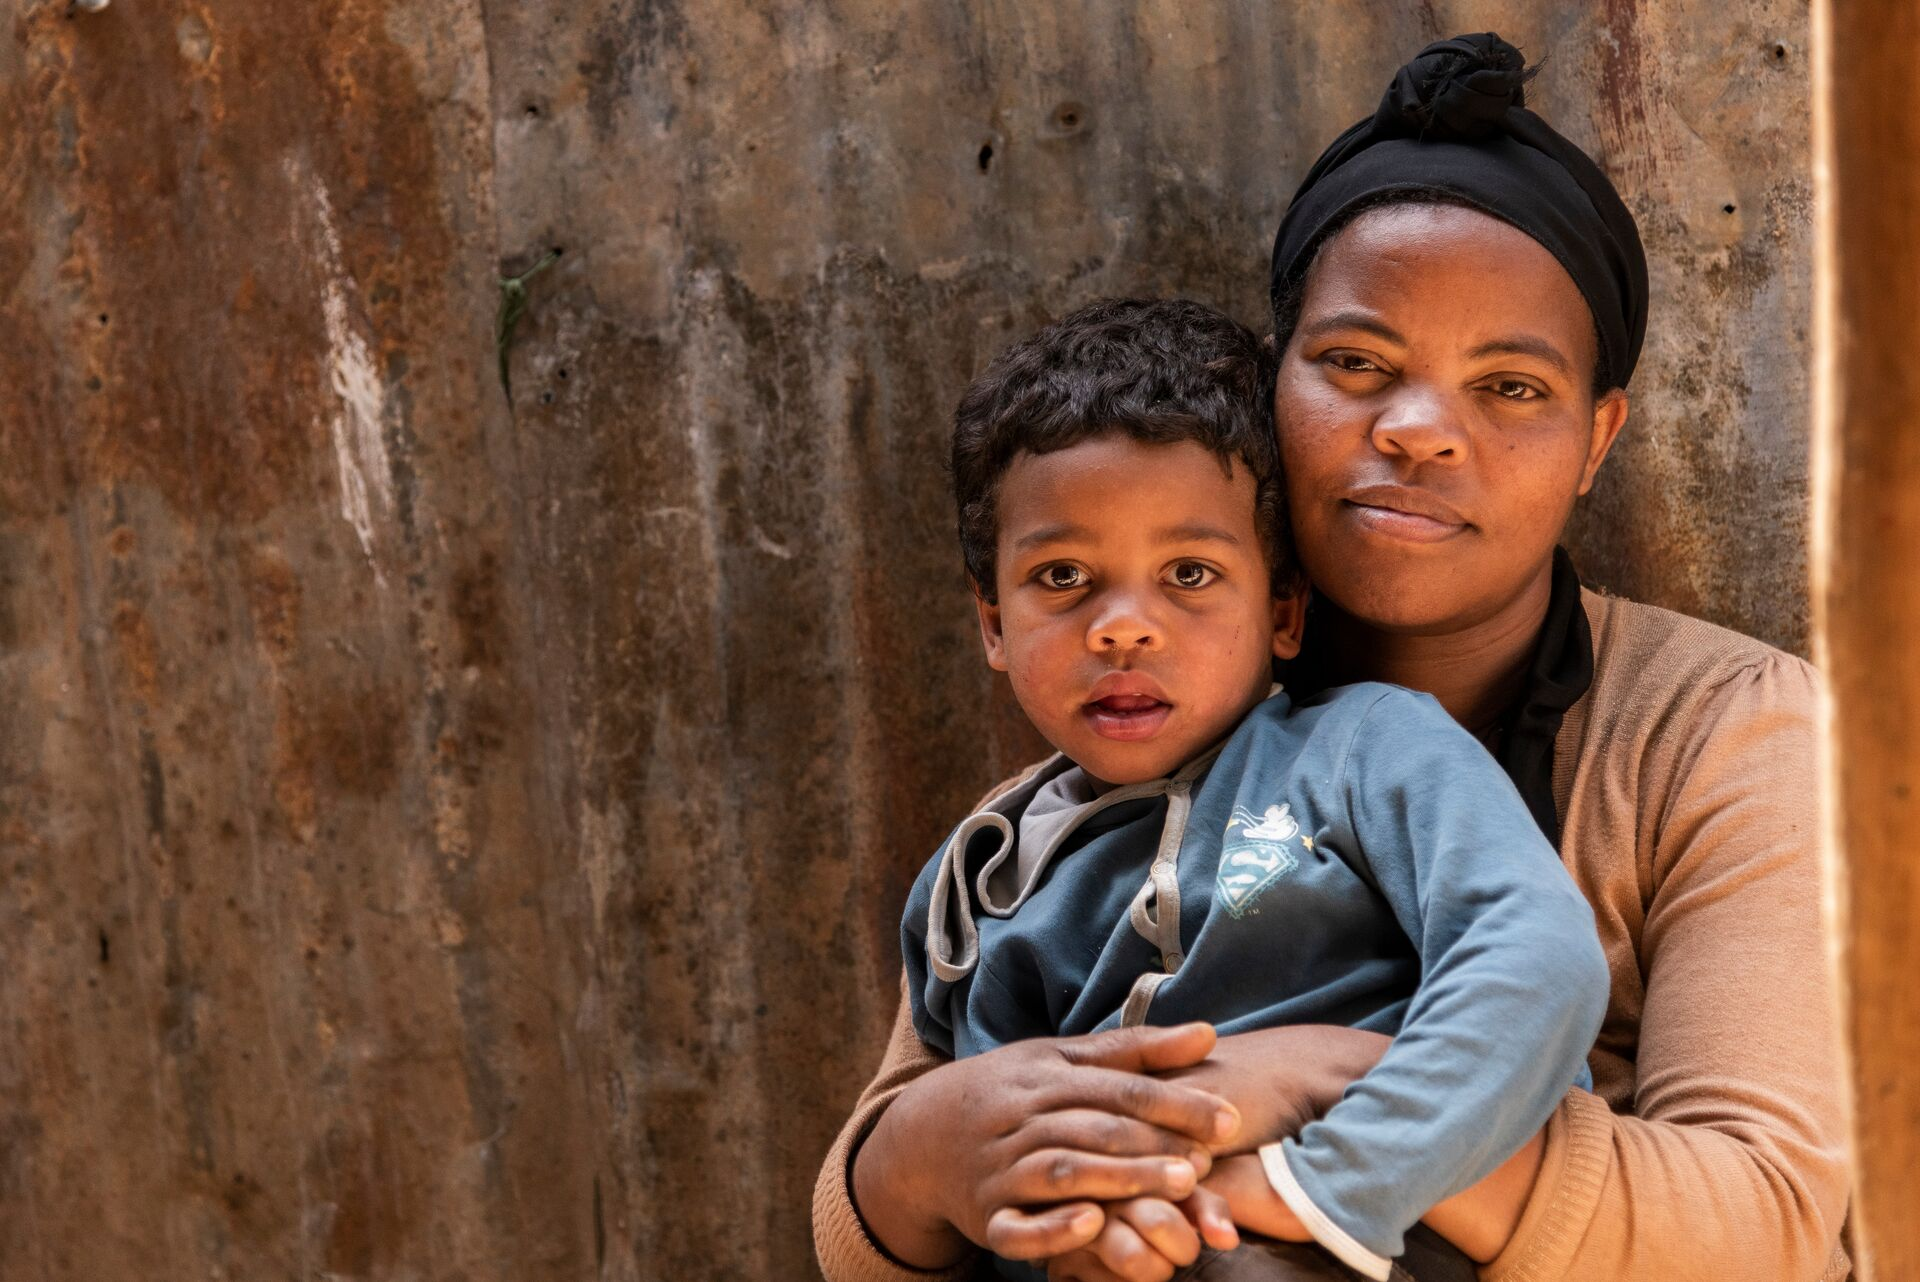 Single mother of 6, Abiyot, sits with her son in her lap.